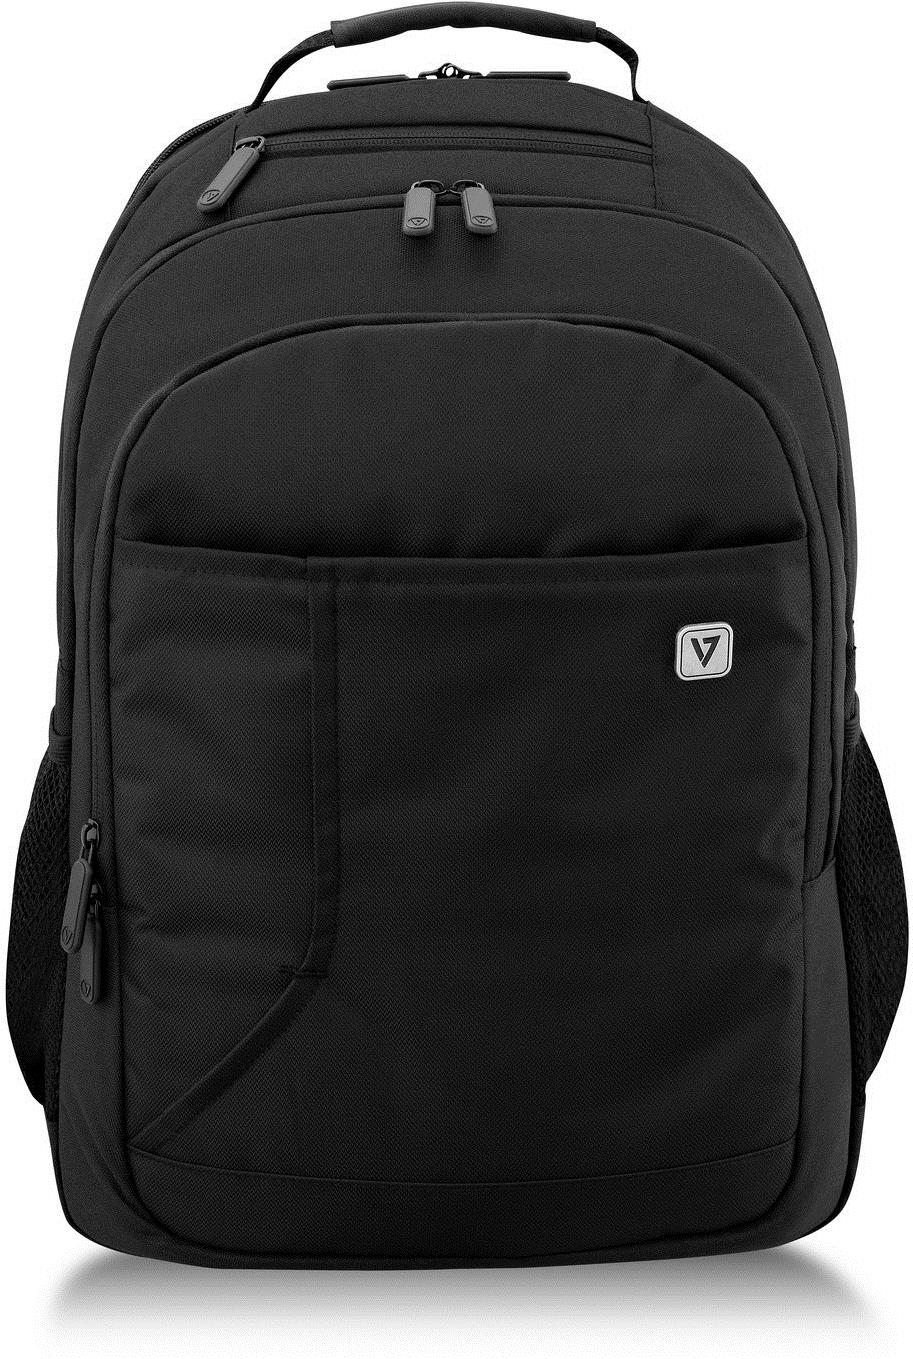 V7 Professional Laptop Backback - Notebook-Ruck...